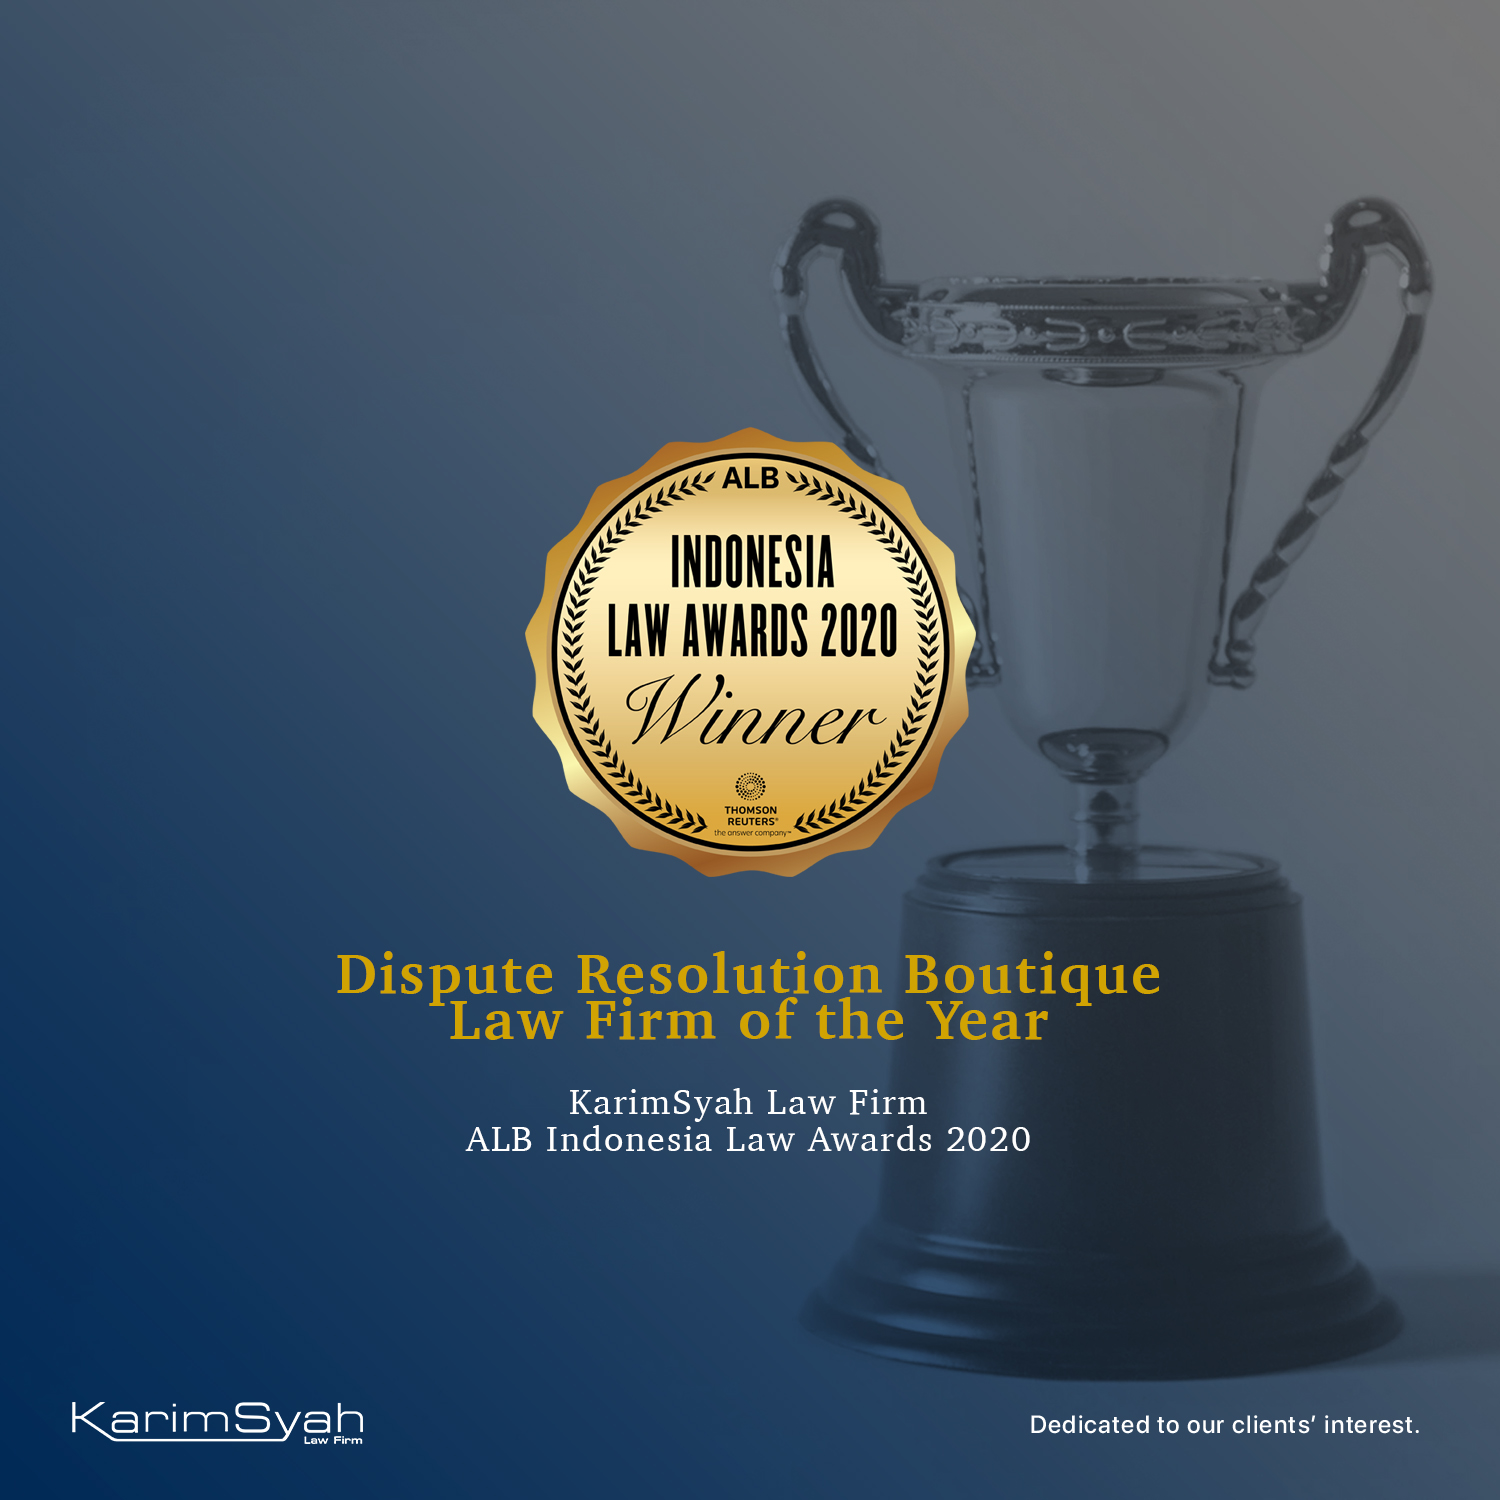 KarimSyah wins Dispute Resolution Boutique Law Firm of the Year